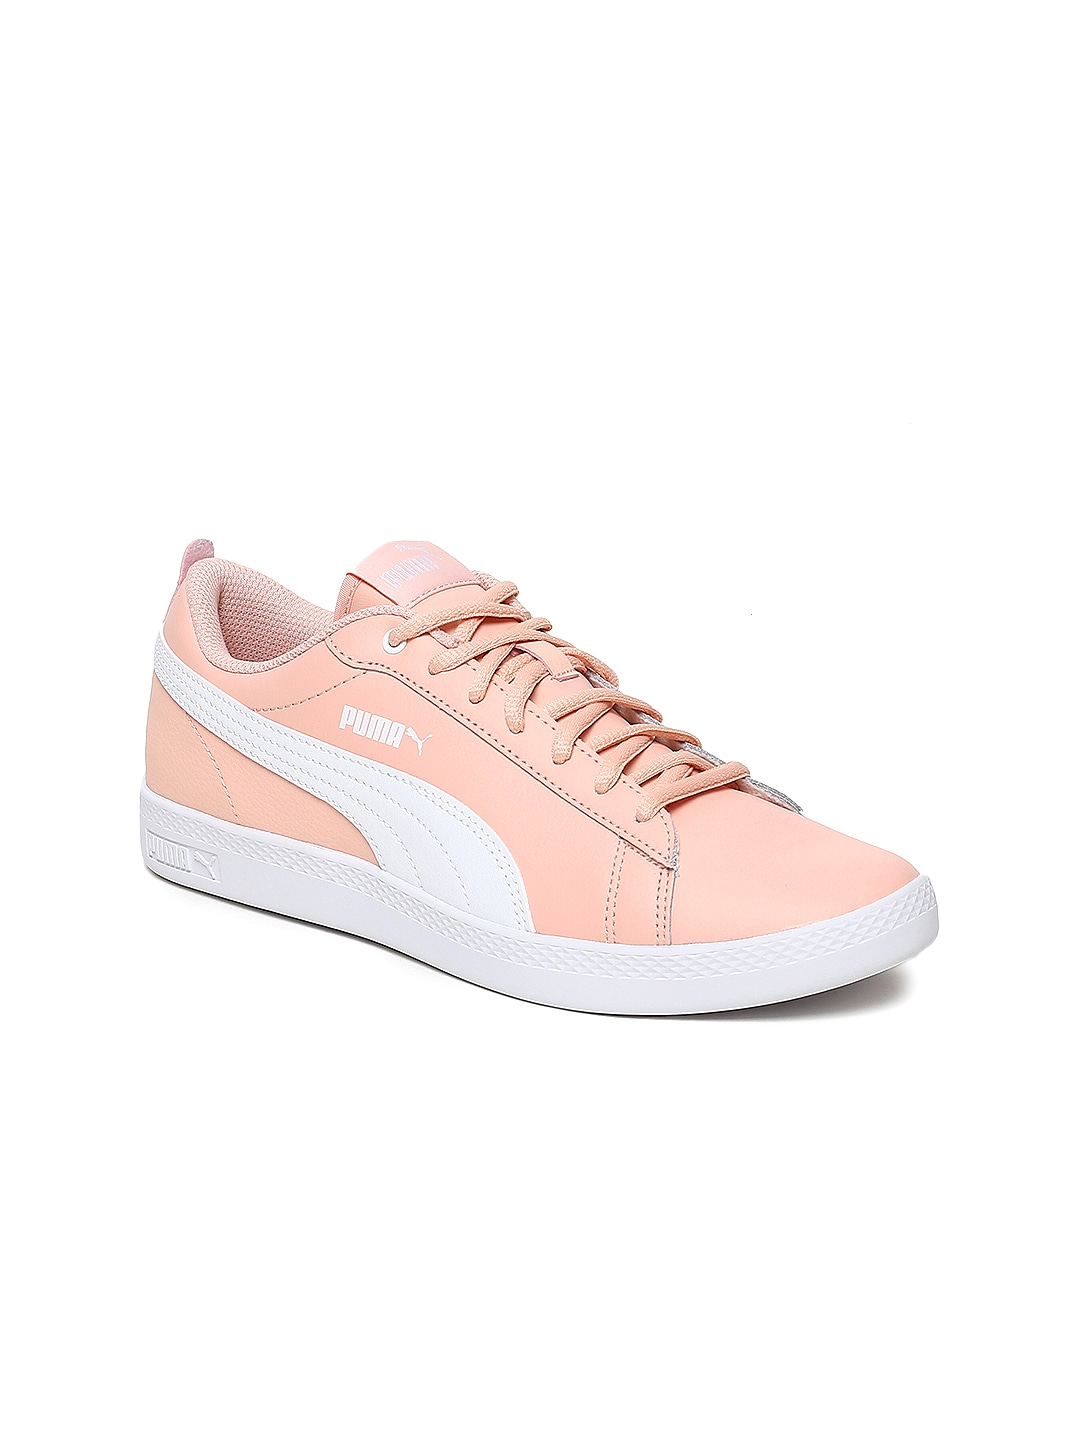 e2b96a29a7a209 Puma Casual Shoes - Casual Puma Shoes Online for Men Women